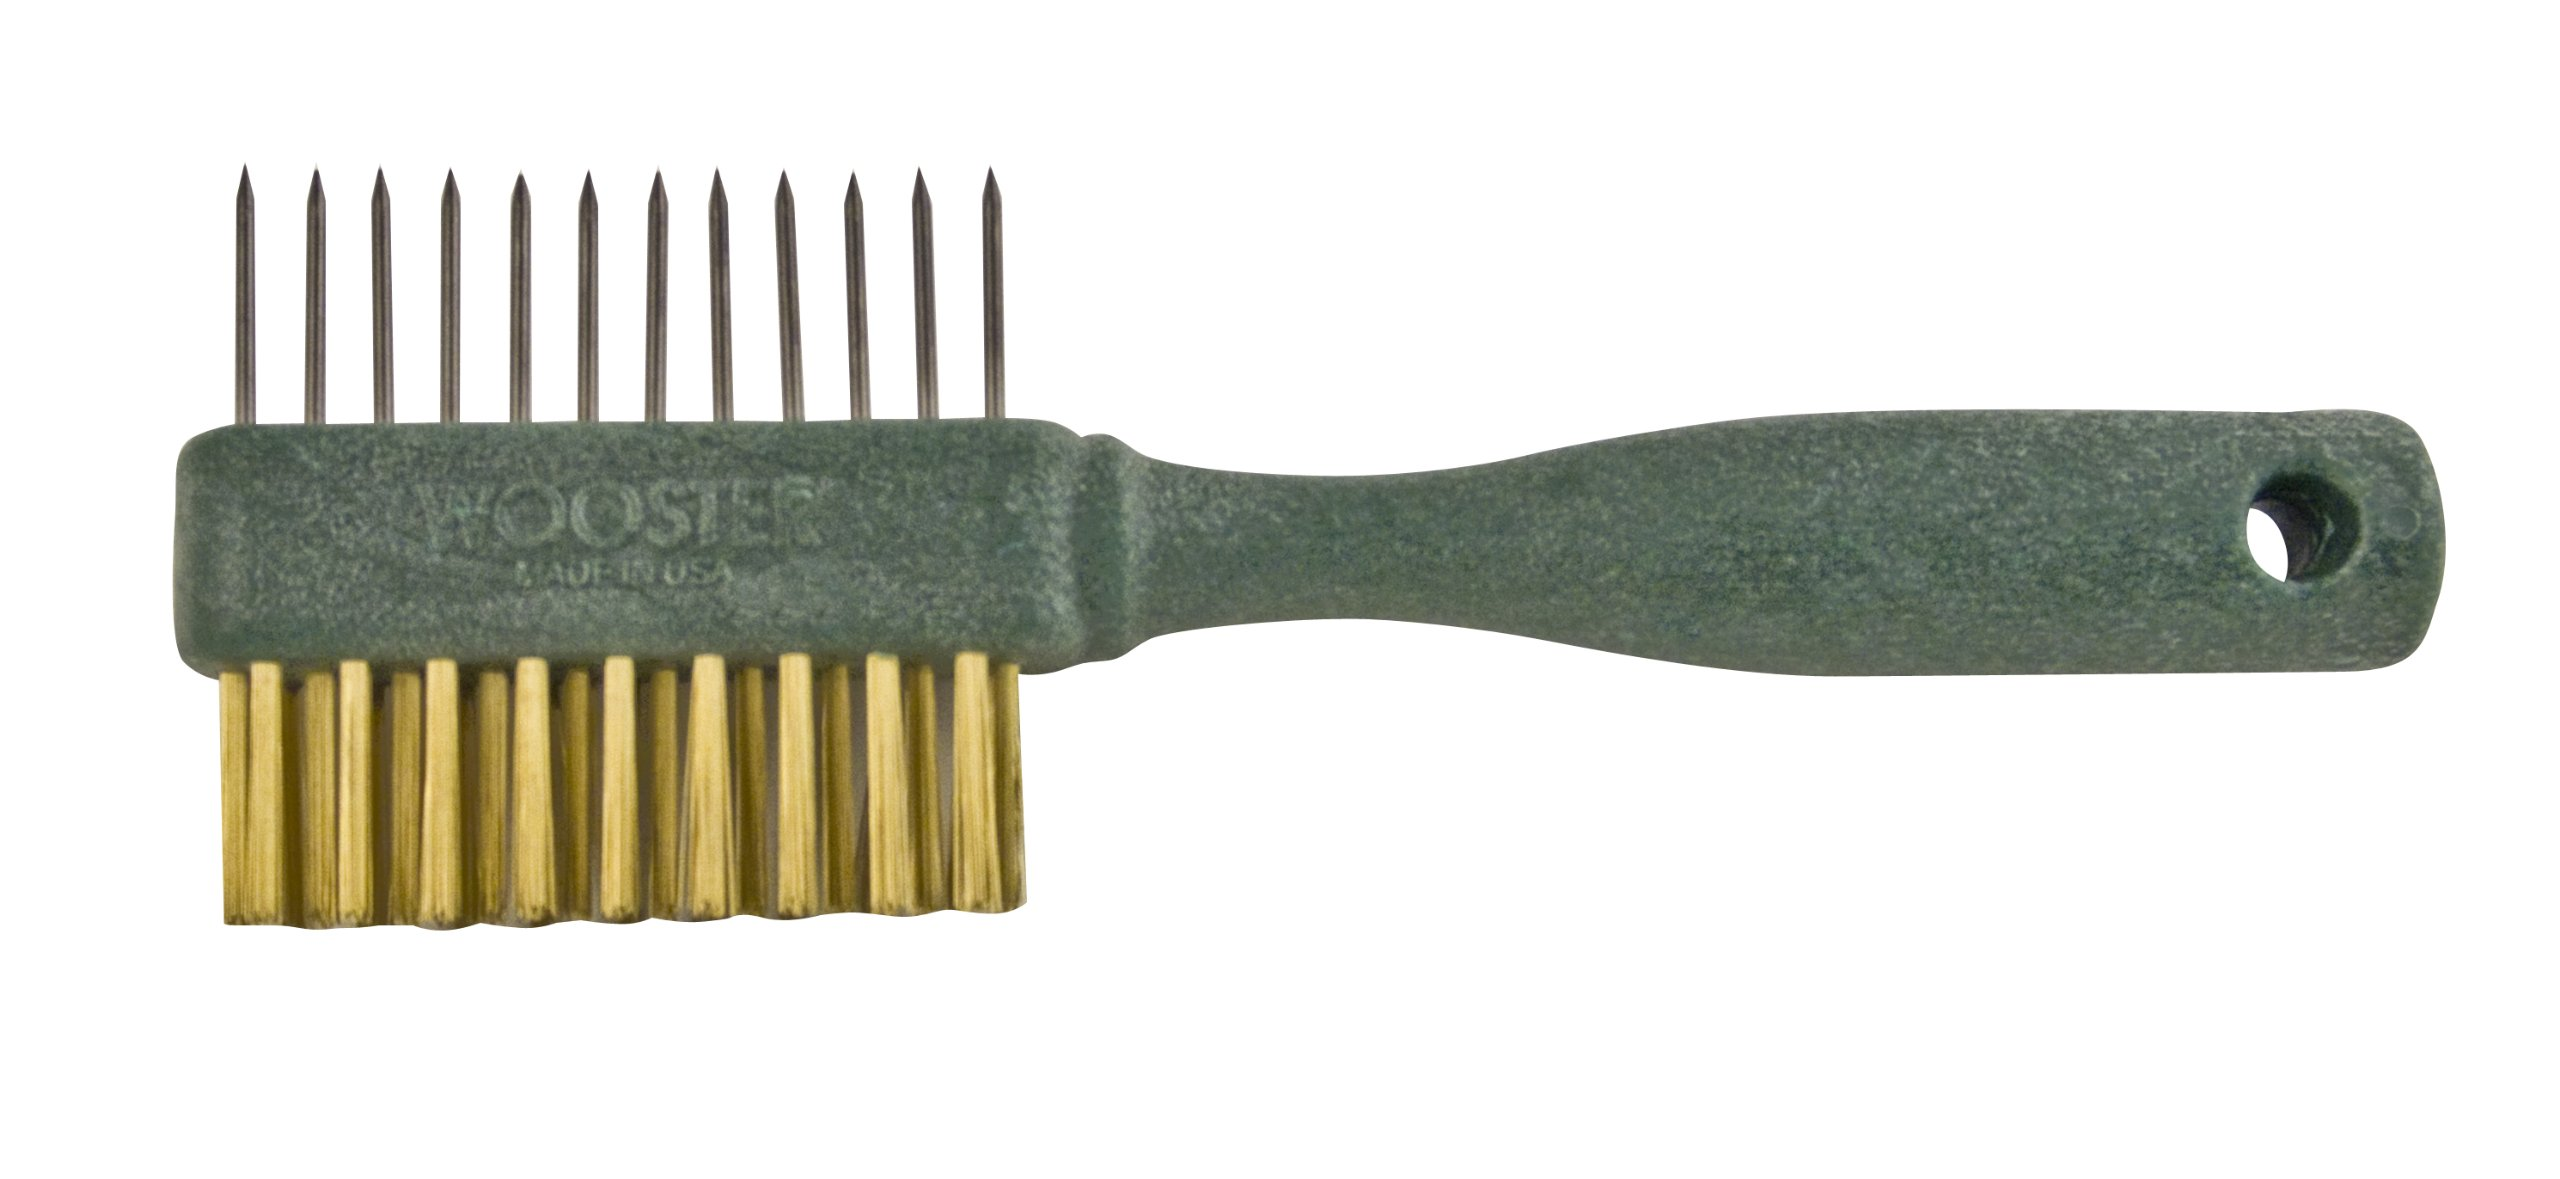 WOOSTER BRUSH 1831 2 Side Painters Comb by Wooster Brush